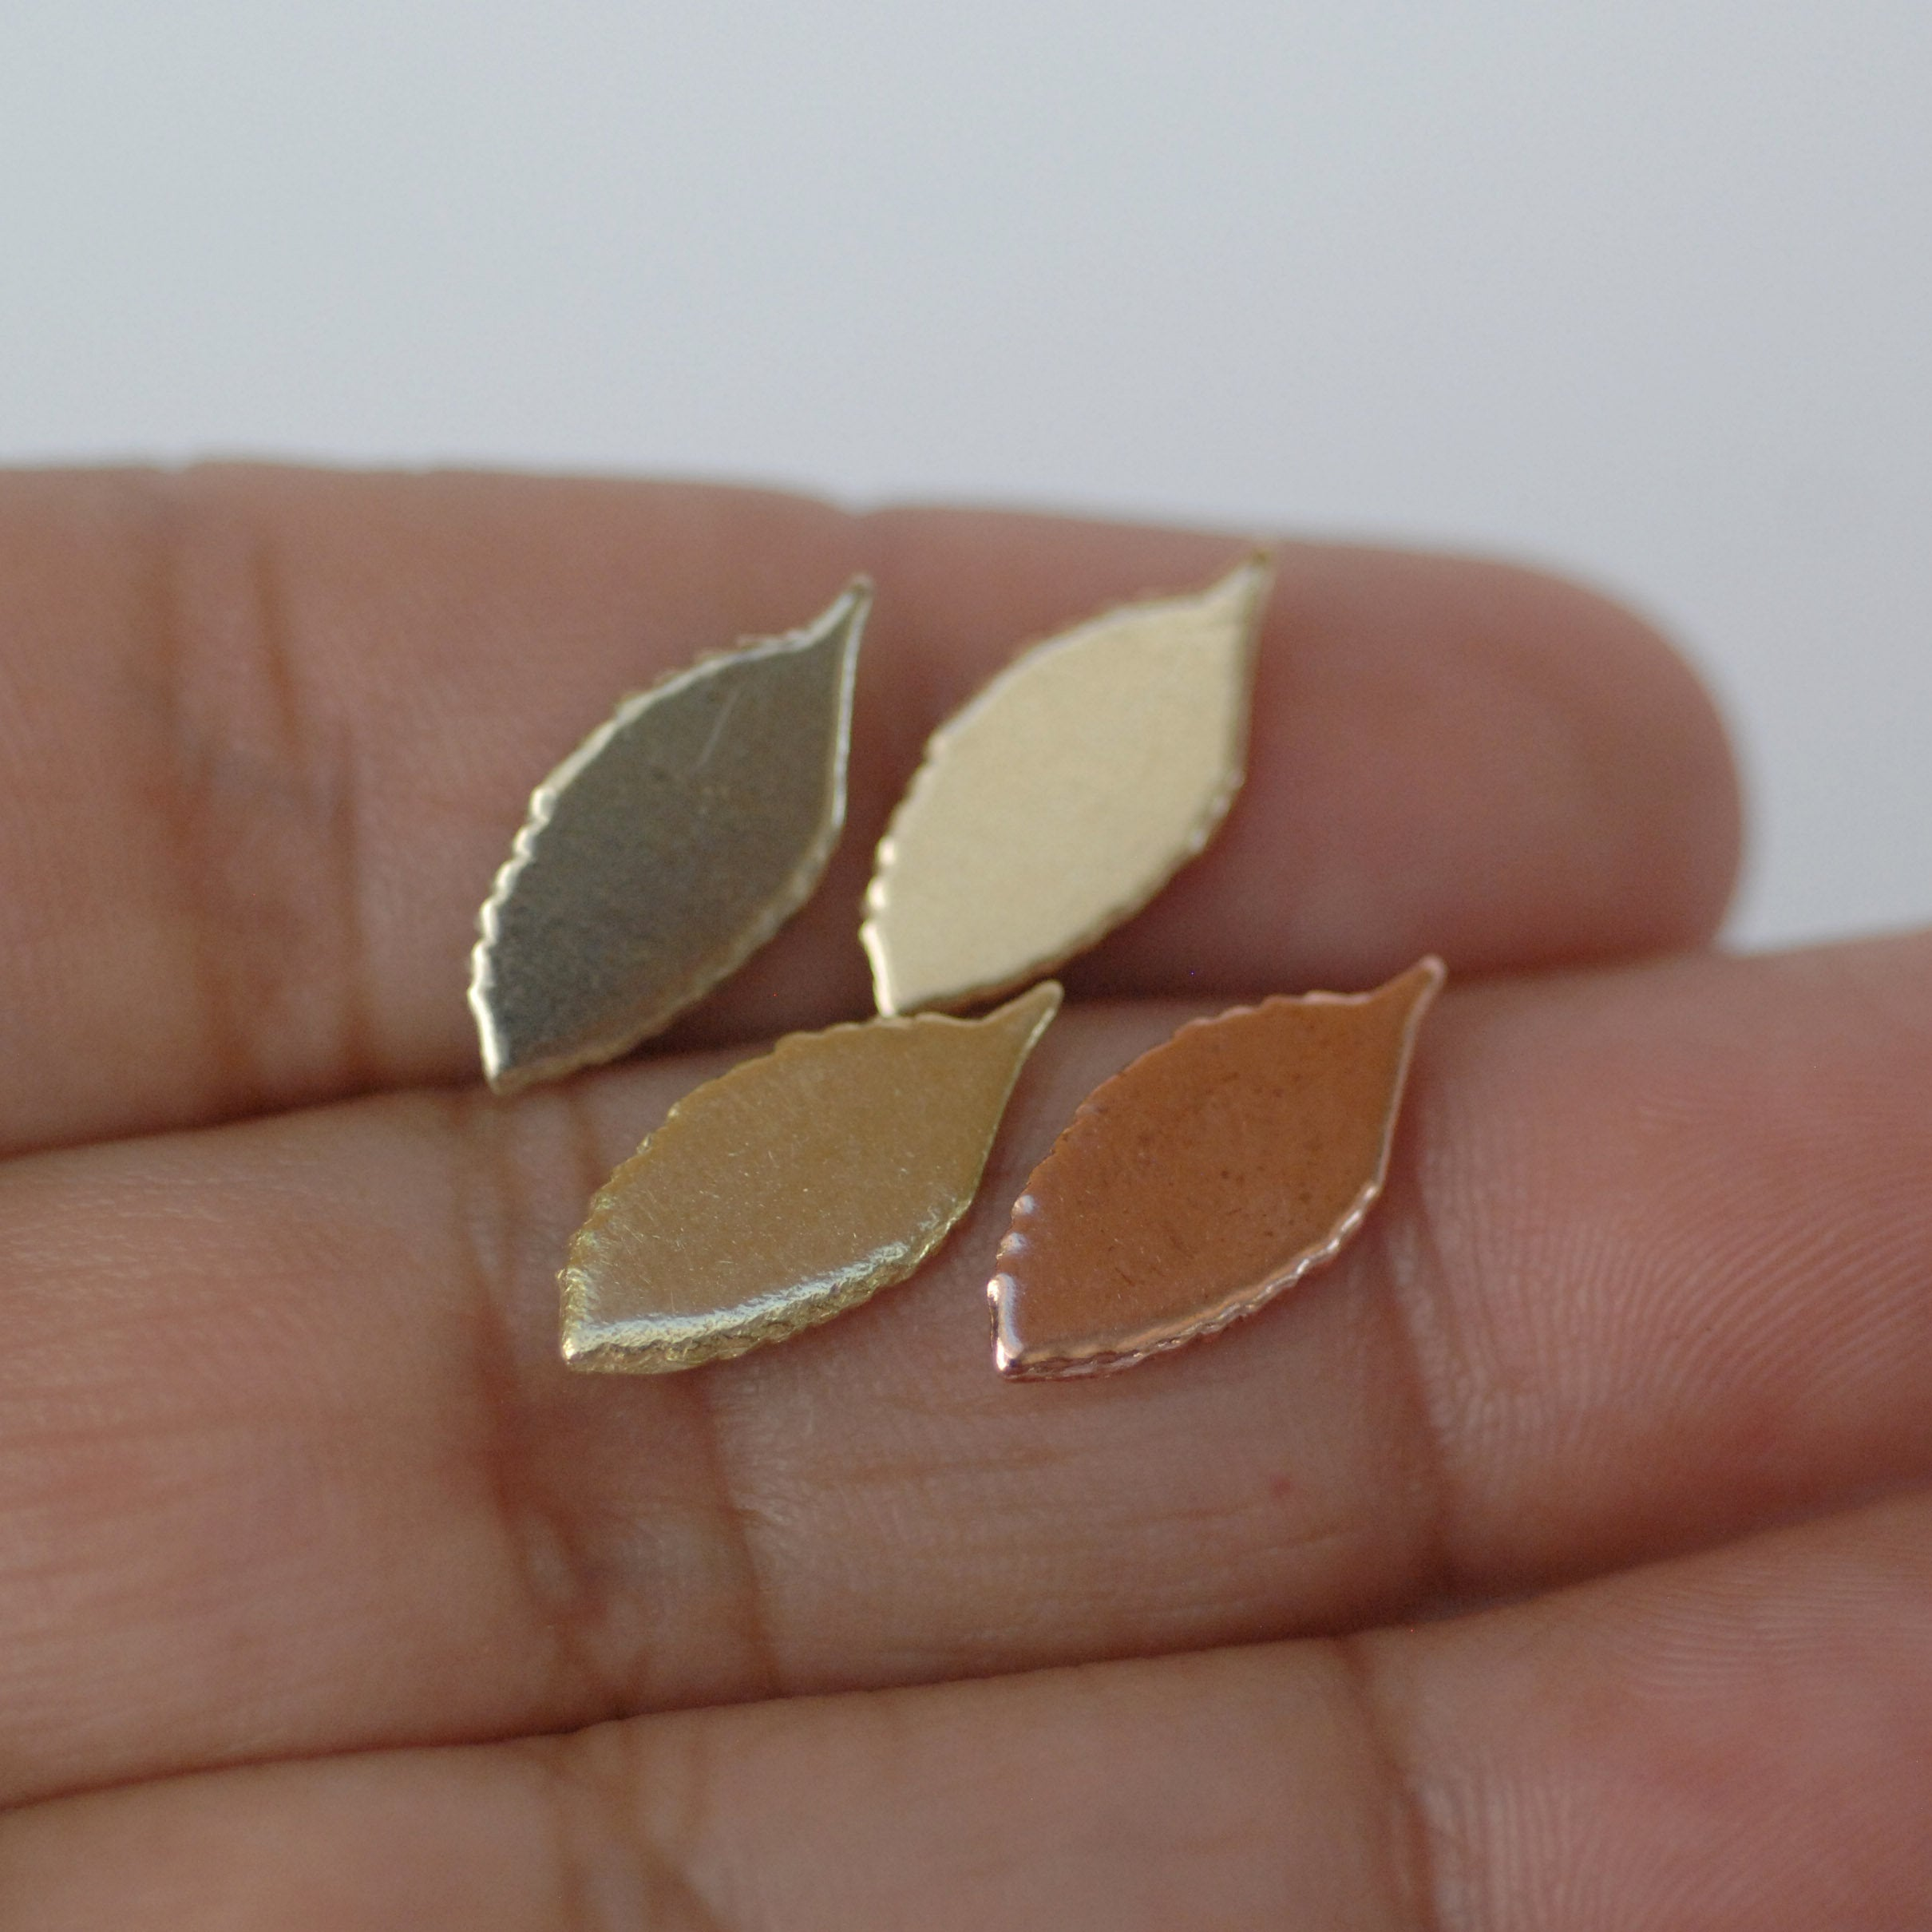 Tiny Leaf shapes - Leaves blank shape for making jewelry